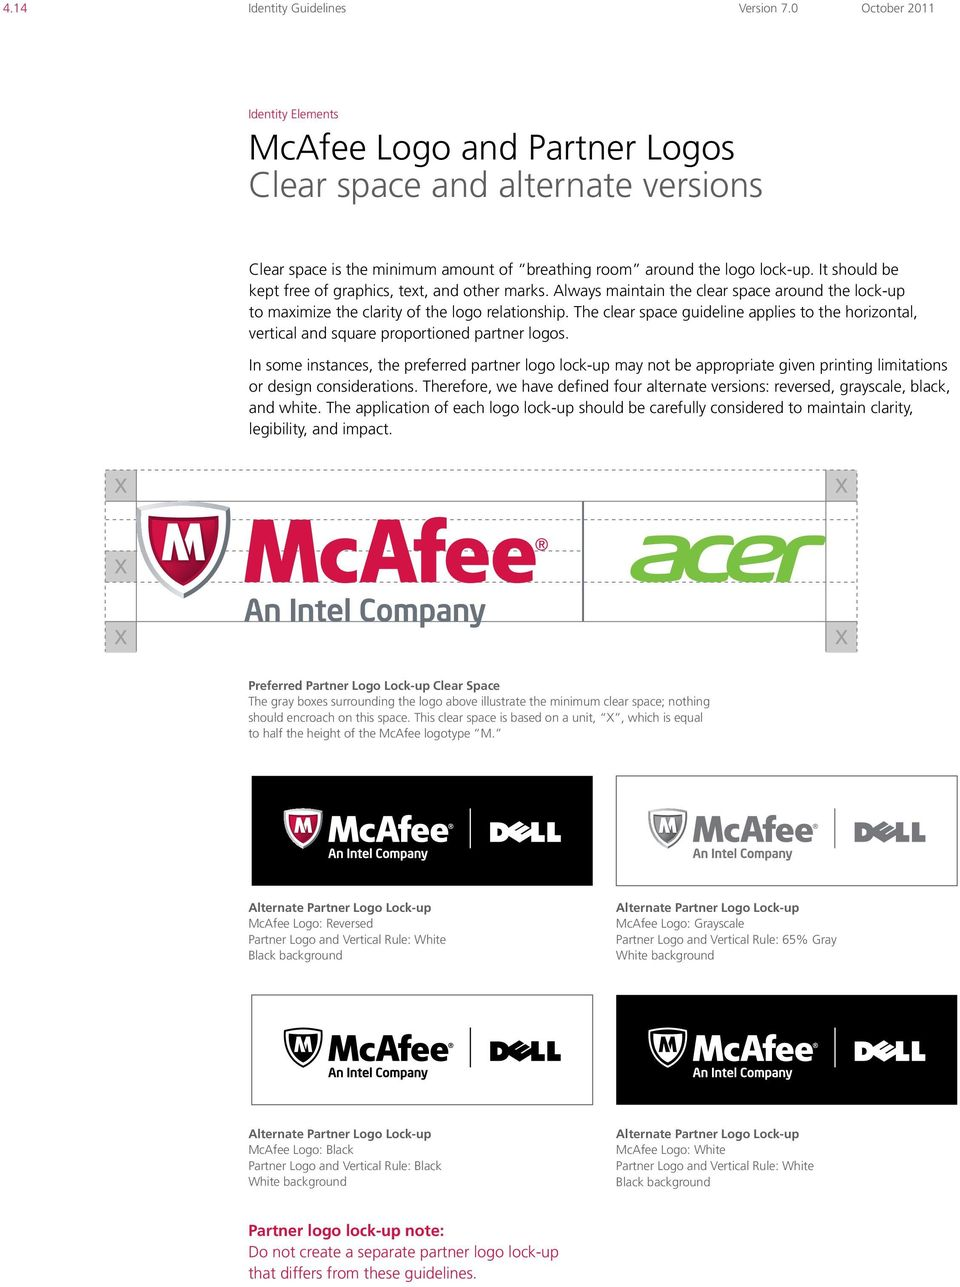 The clear space guideline applies to the horizontal, vertical and square proportioned partner logos.